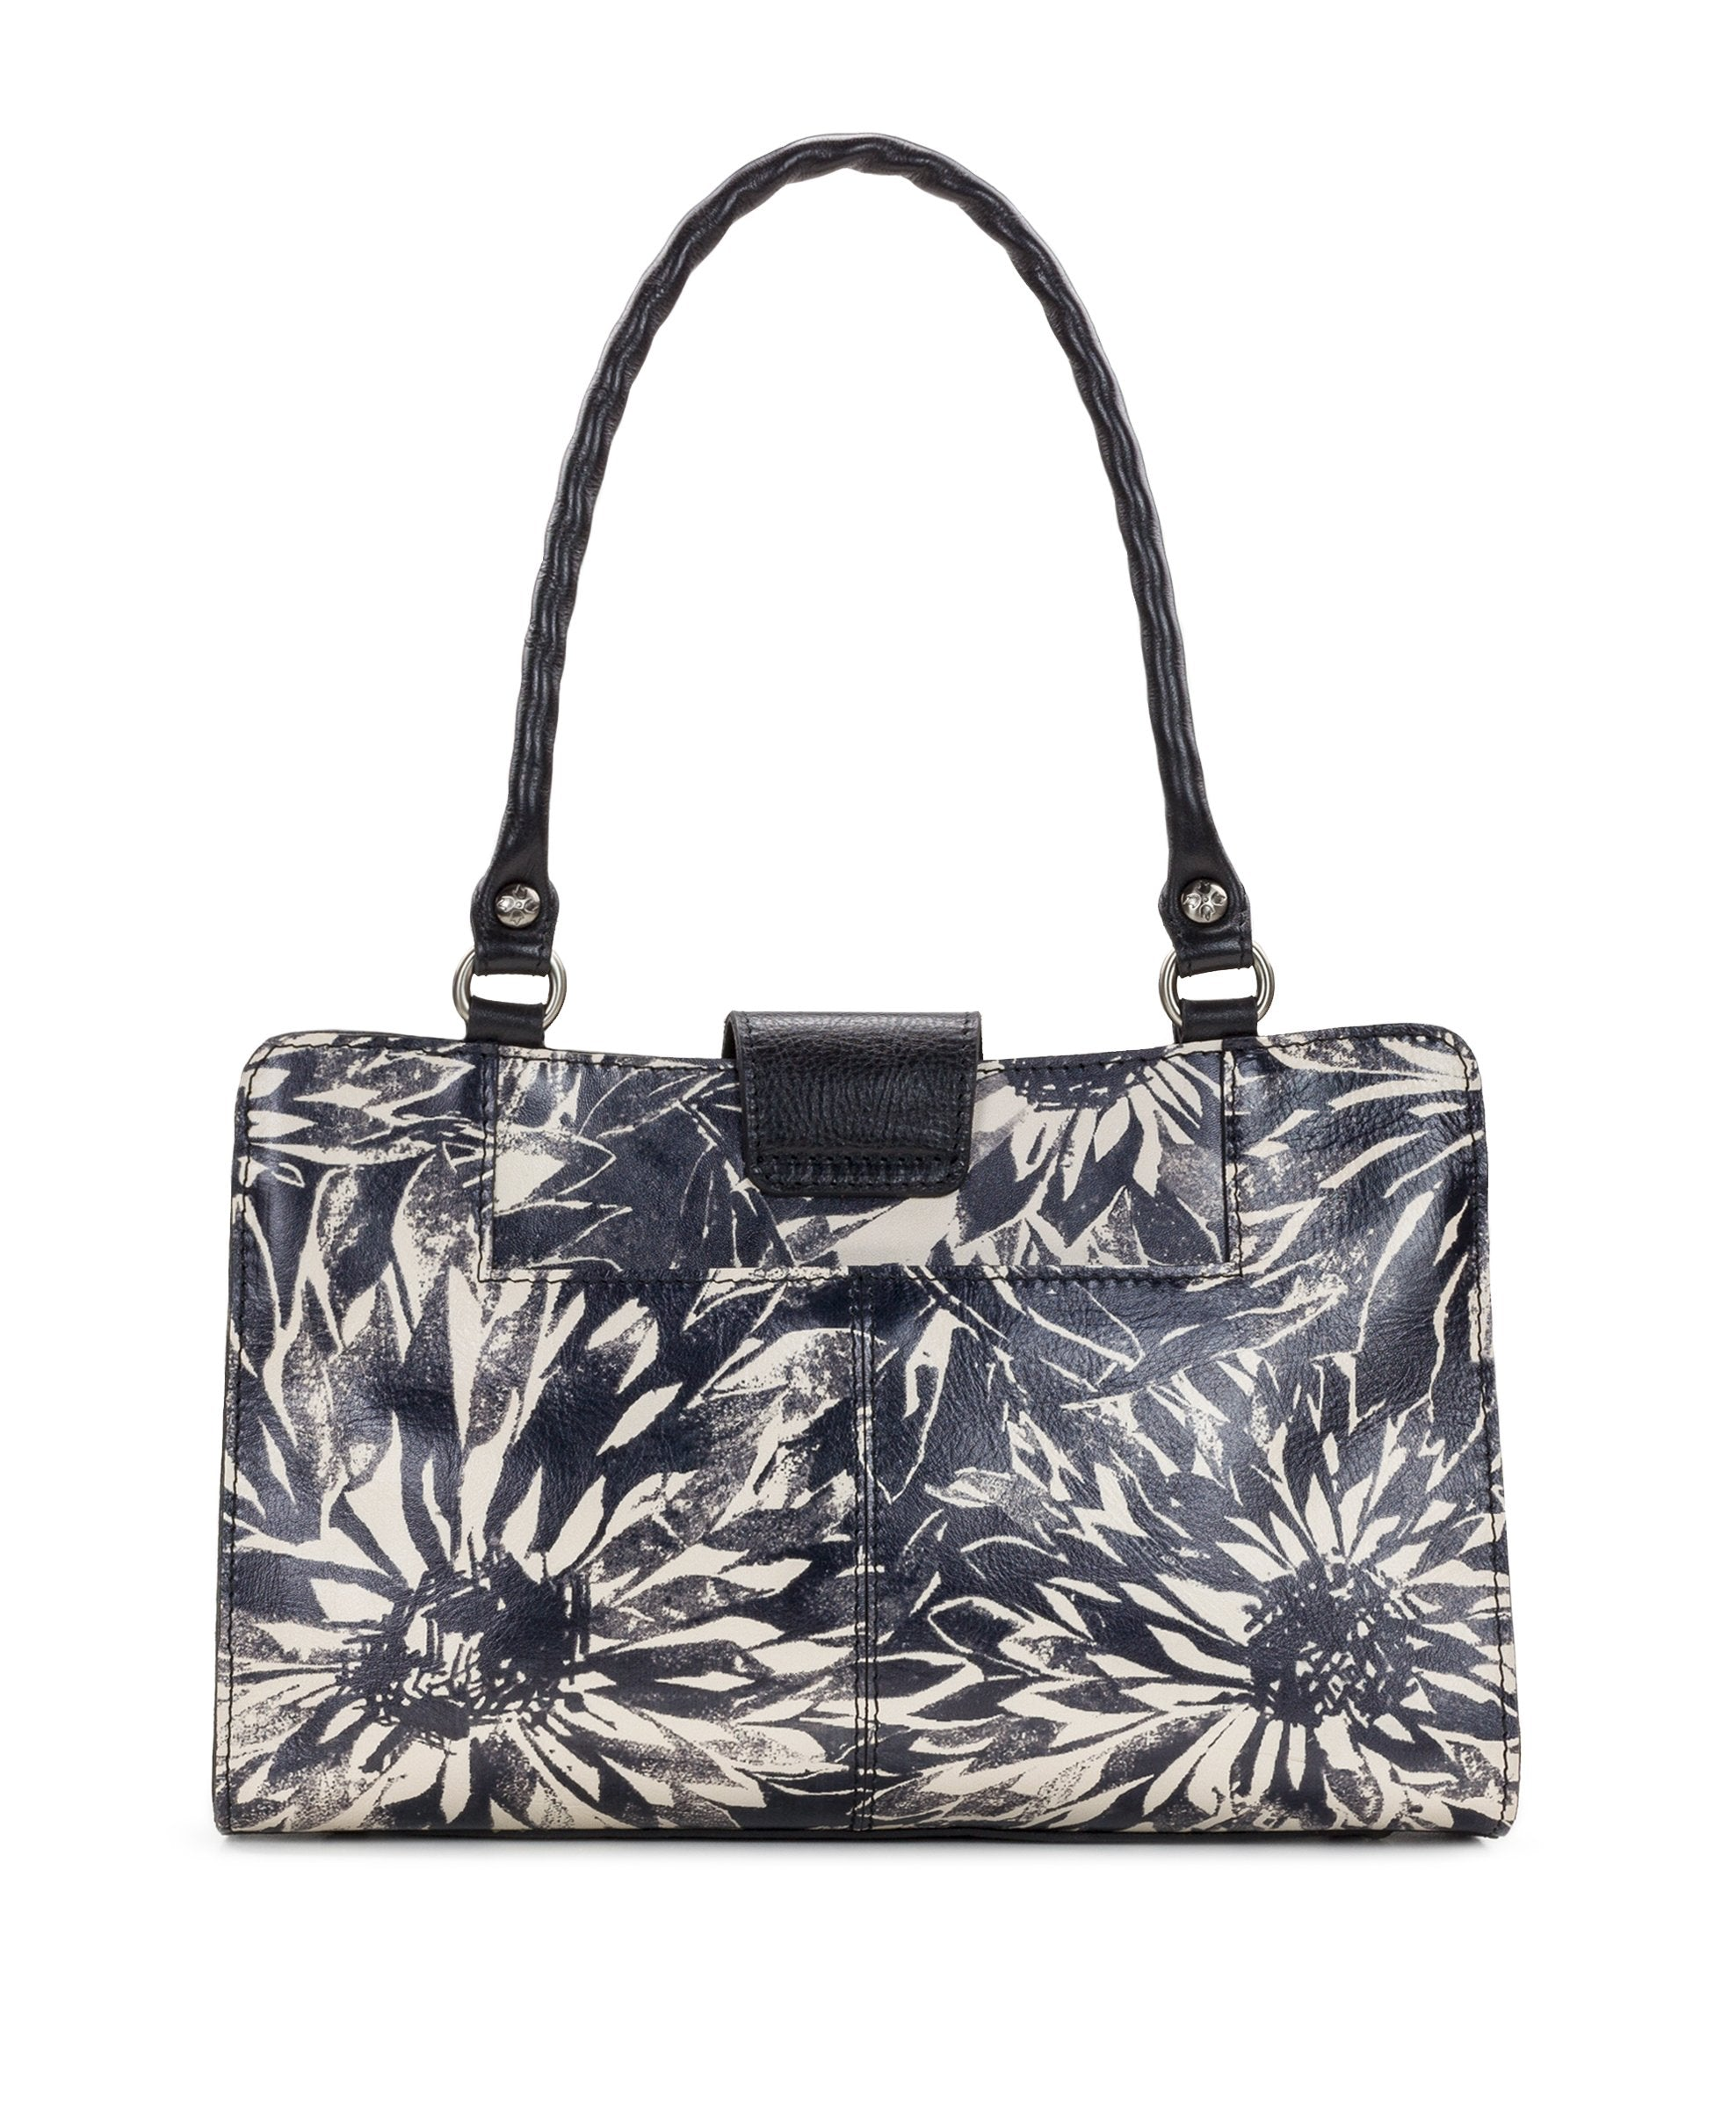 Rienzo Satchel - Sunflower Print 2